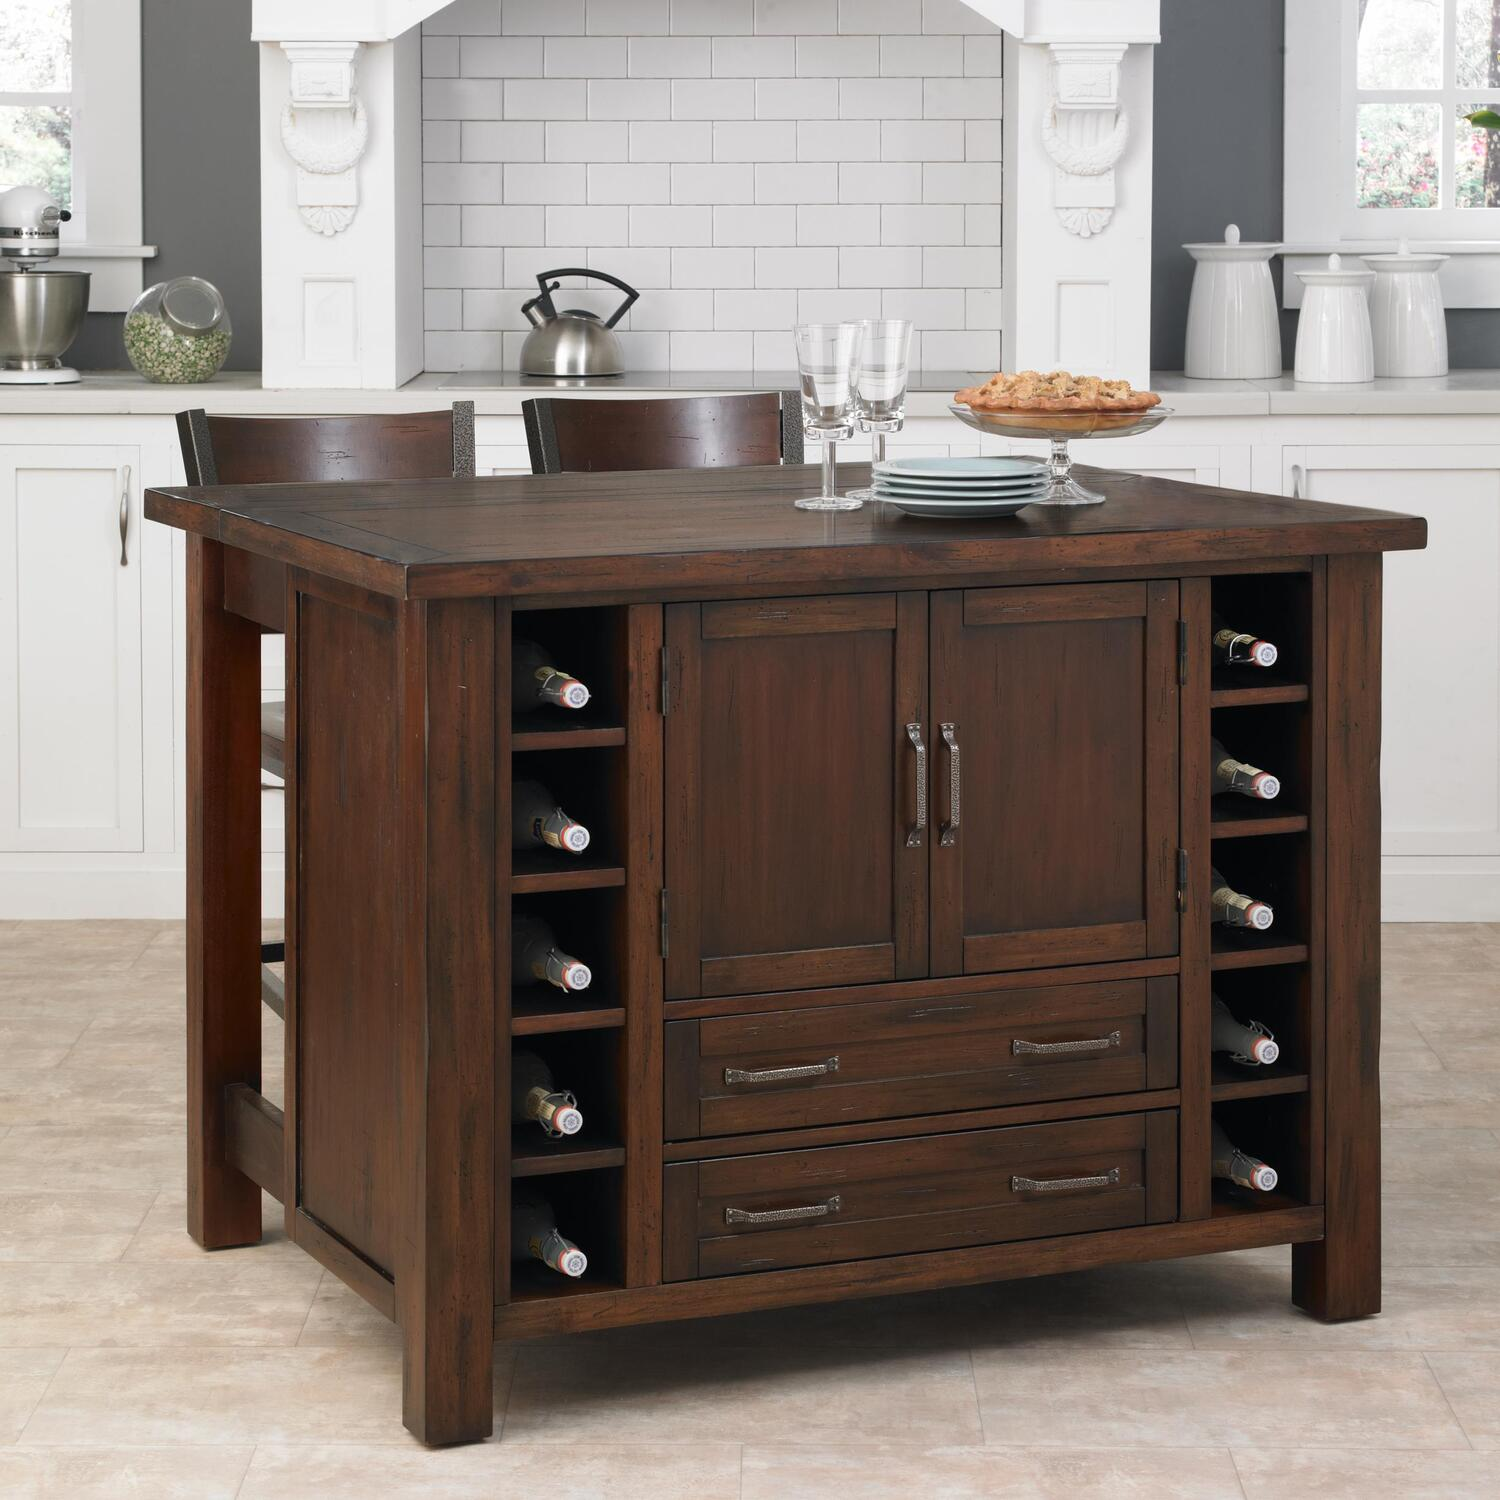 Cabin Creek Kitchen Island With Breakfast Bar And Two Stools Ojcommerce